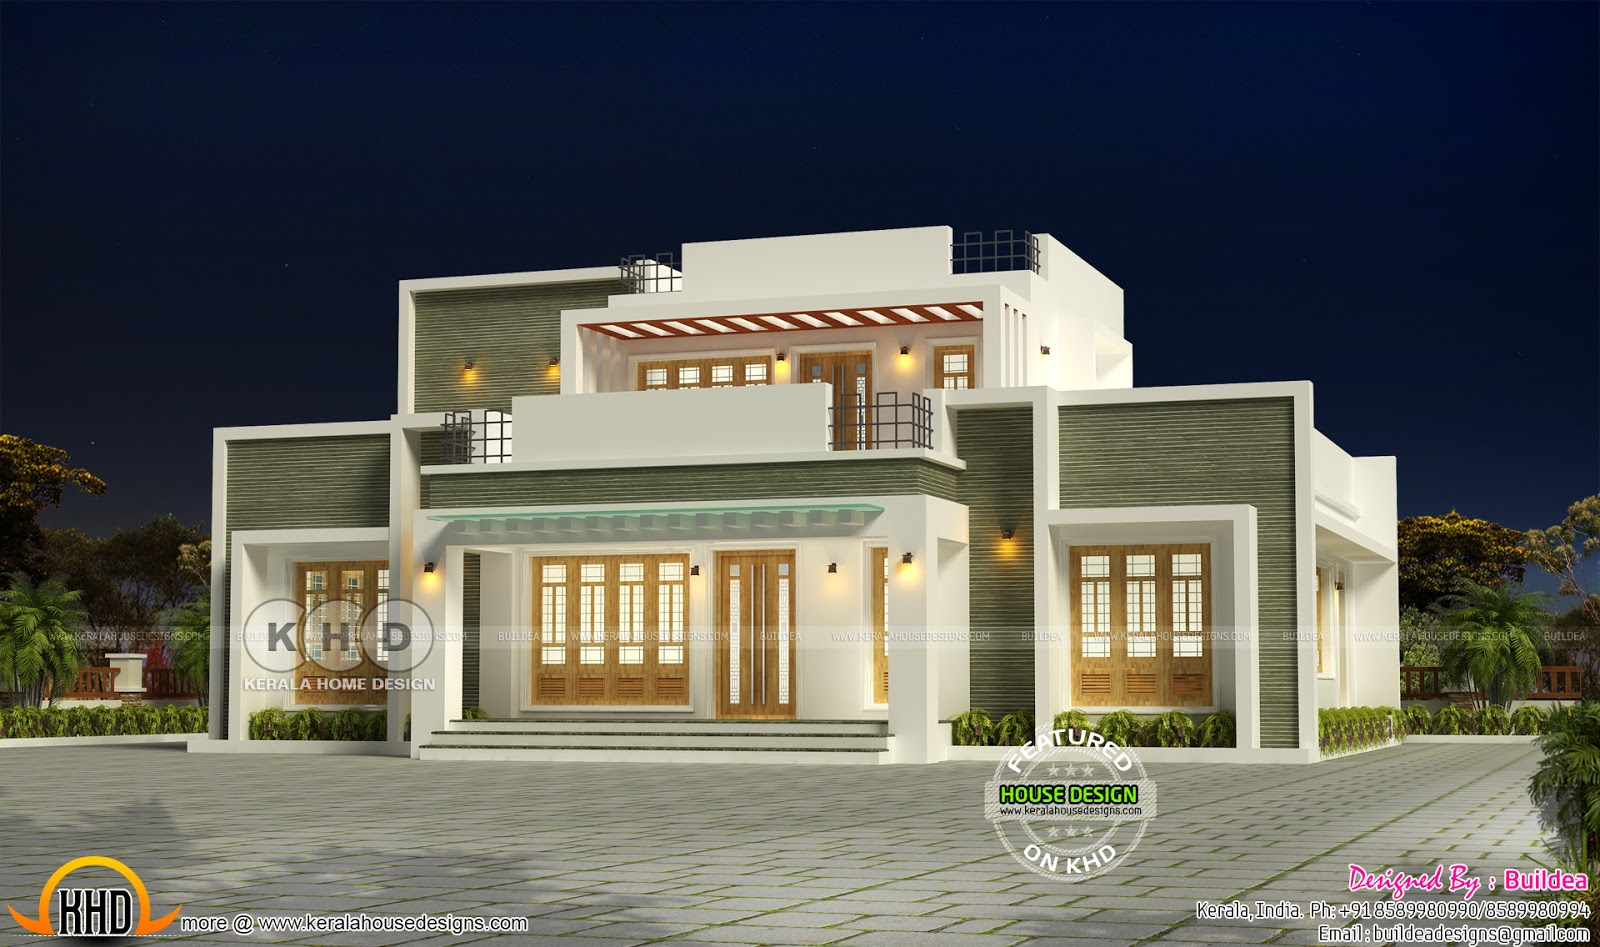 2155 Square Feet Modern Flat Roof House Design Kerala Home Design Bloglovin